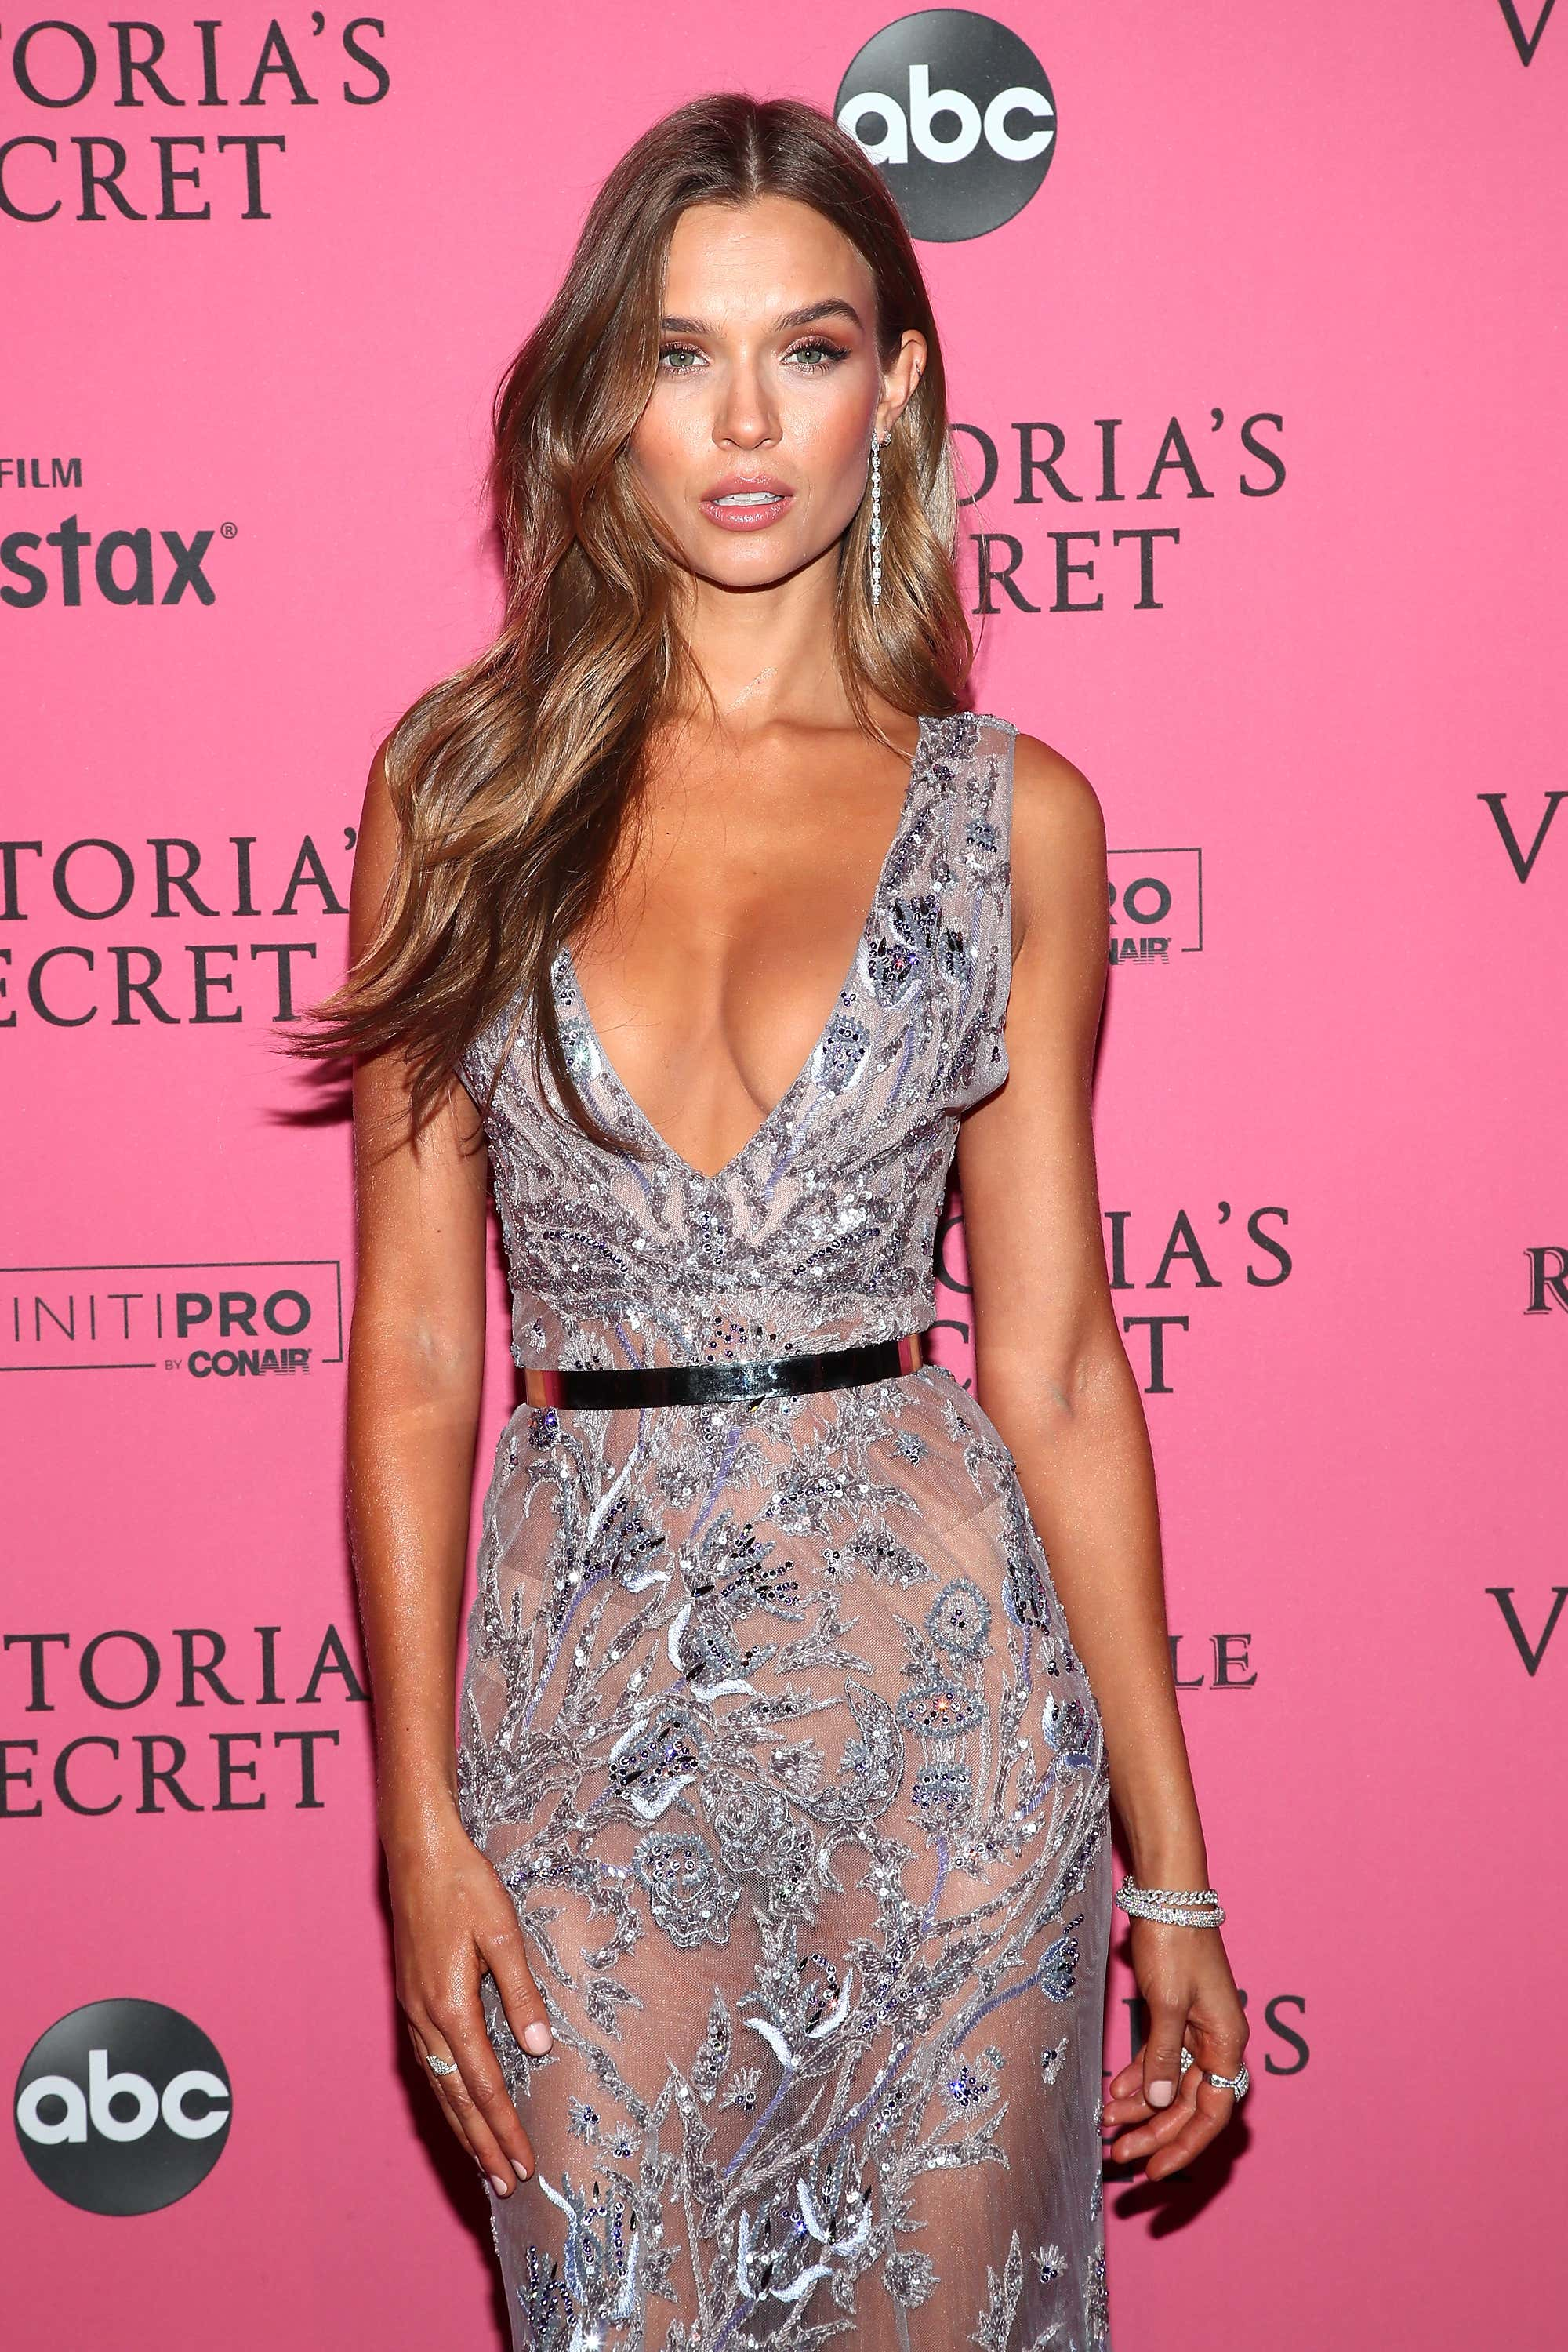 3322e0146c After The Show It s The After Party - The Hottest Looks From The VS ...